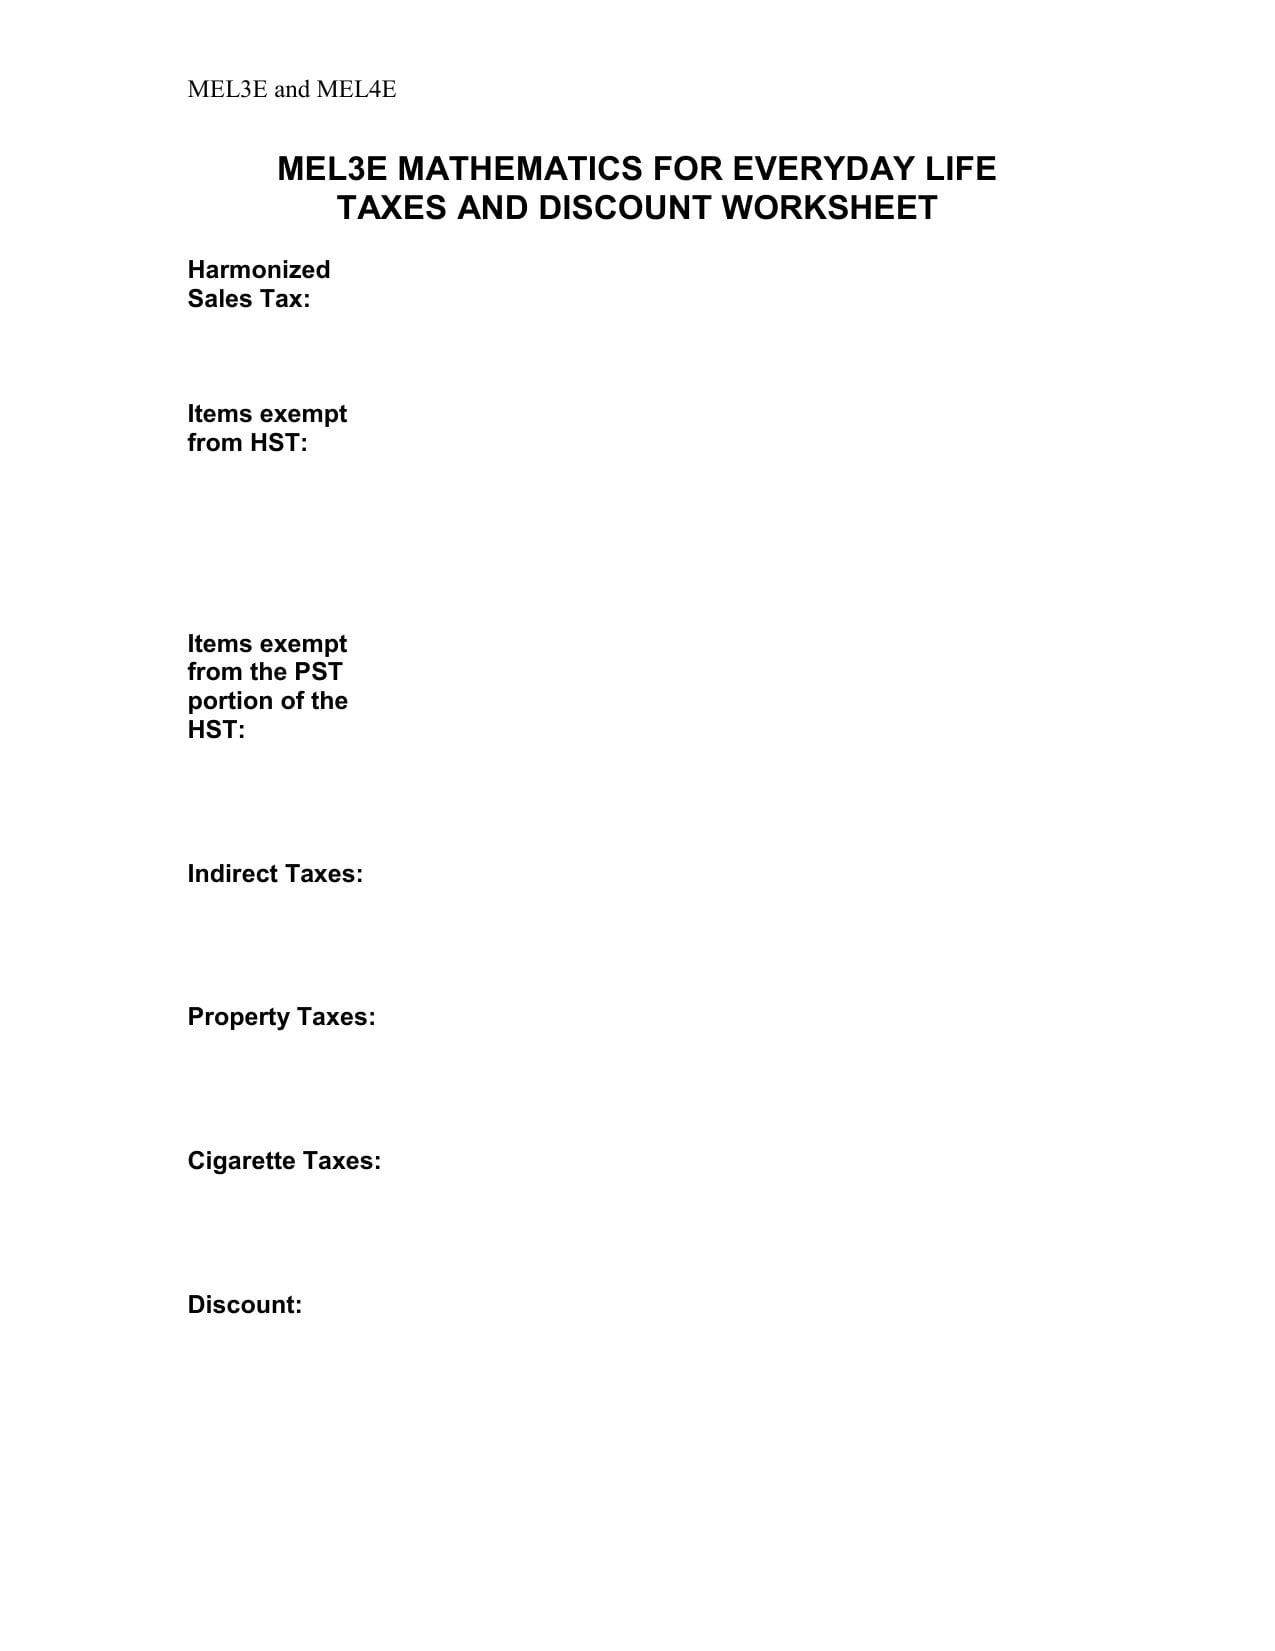 Discounts And Sales Tax Worksheet As Well As Sales Tax And Discount Worksheet